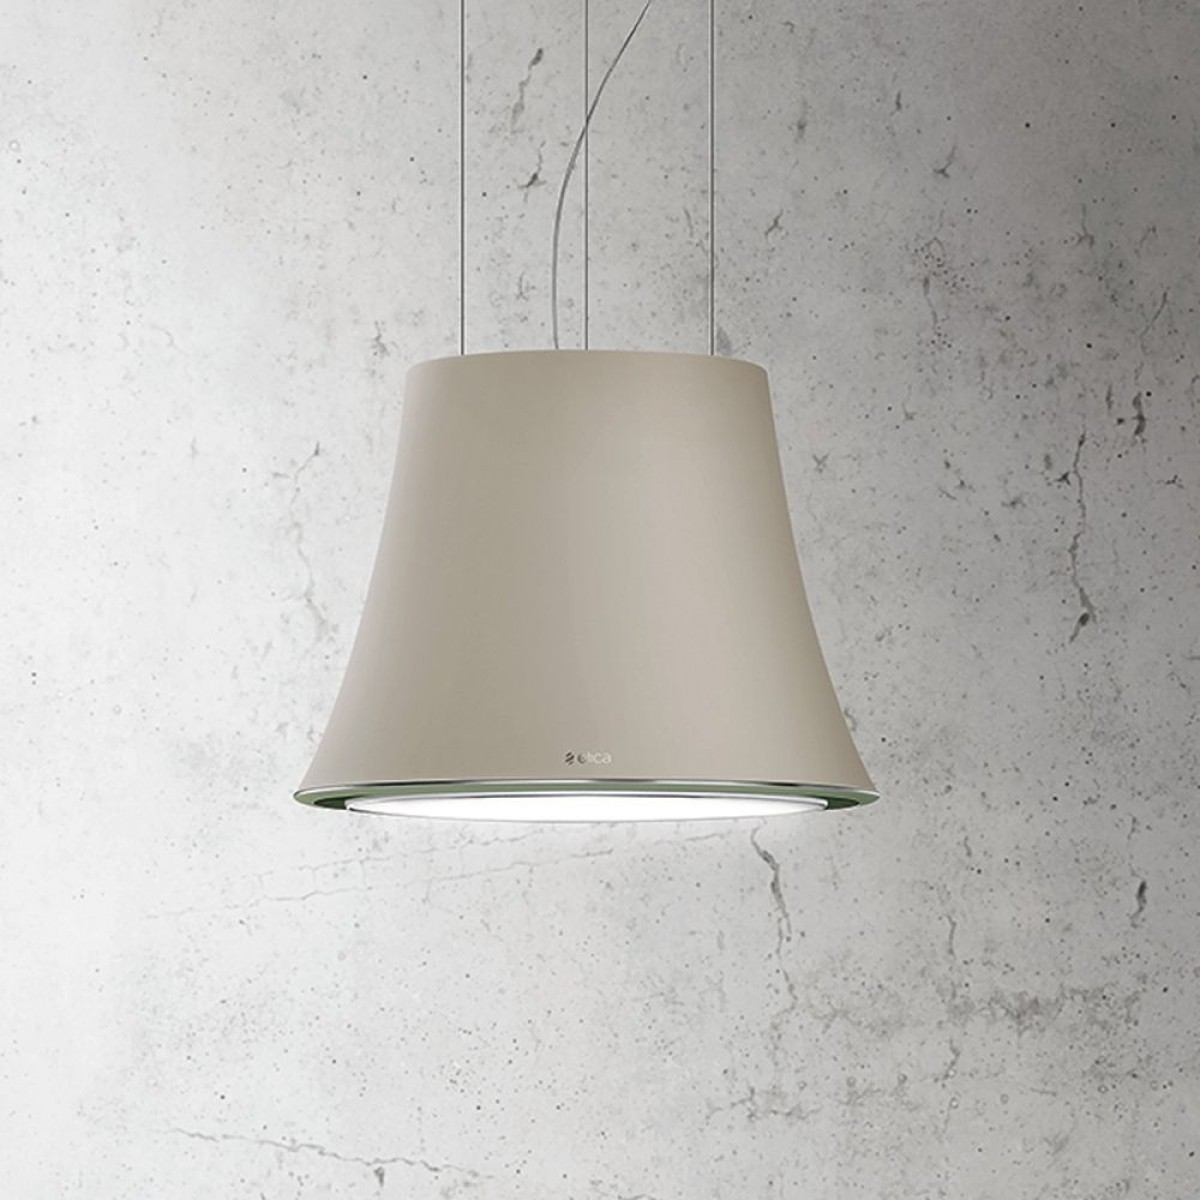 Elica BELLE-JAZZ Decorative Ceiling or Wall mounted Cooker Hood in Neutral finish